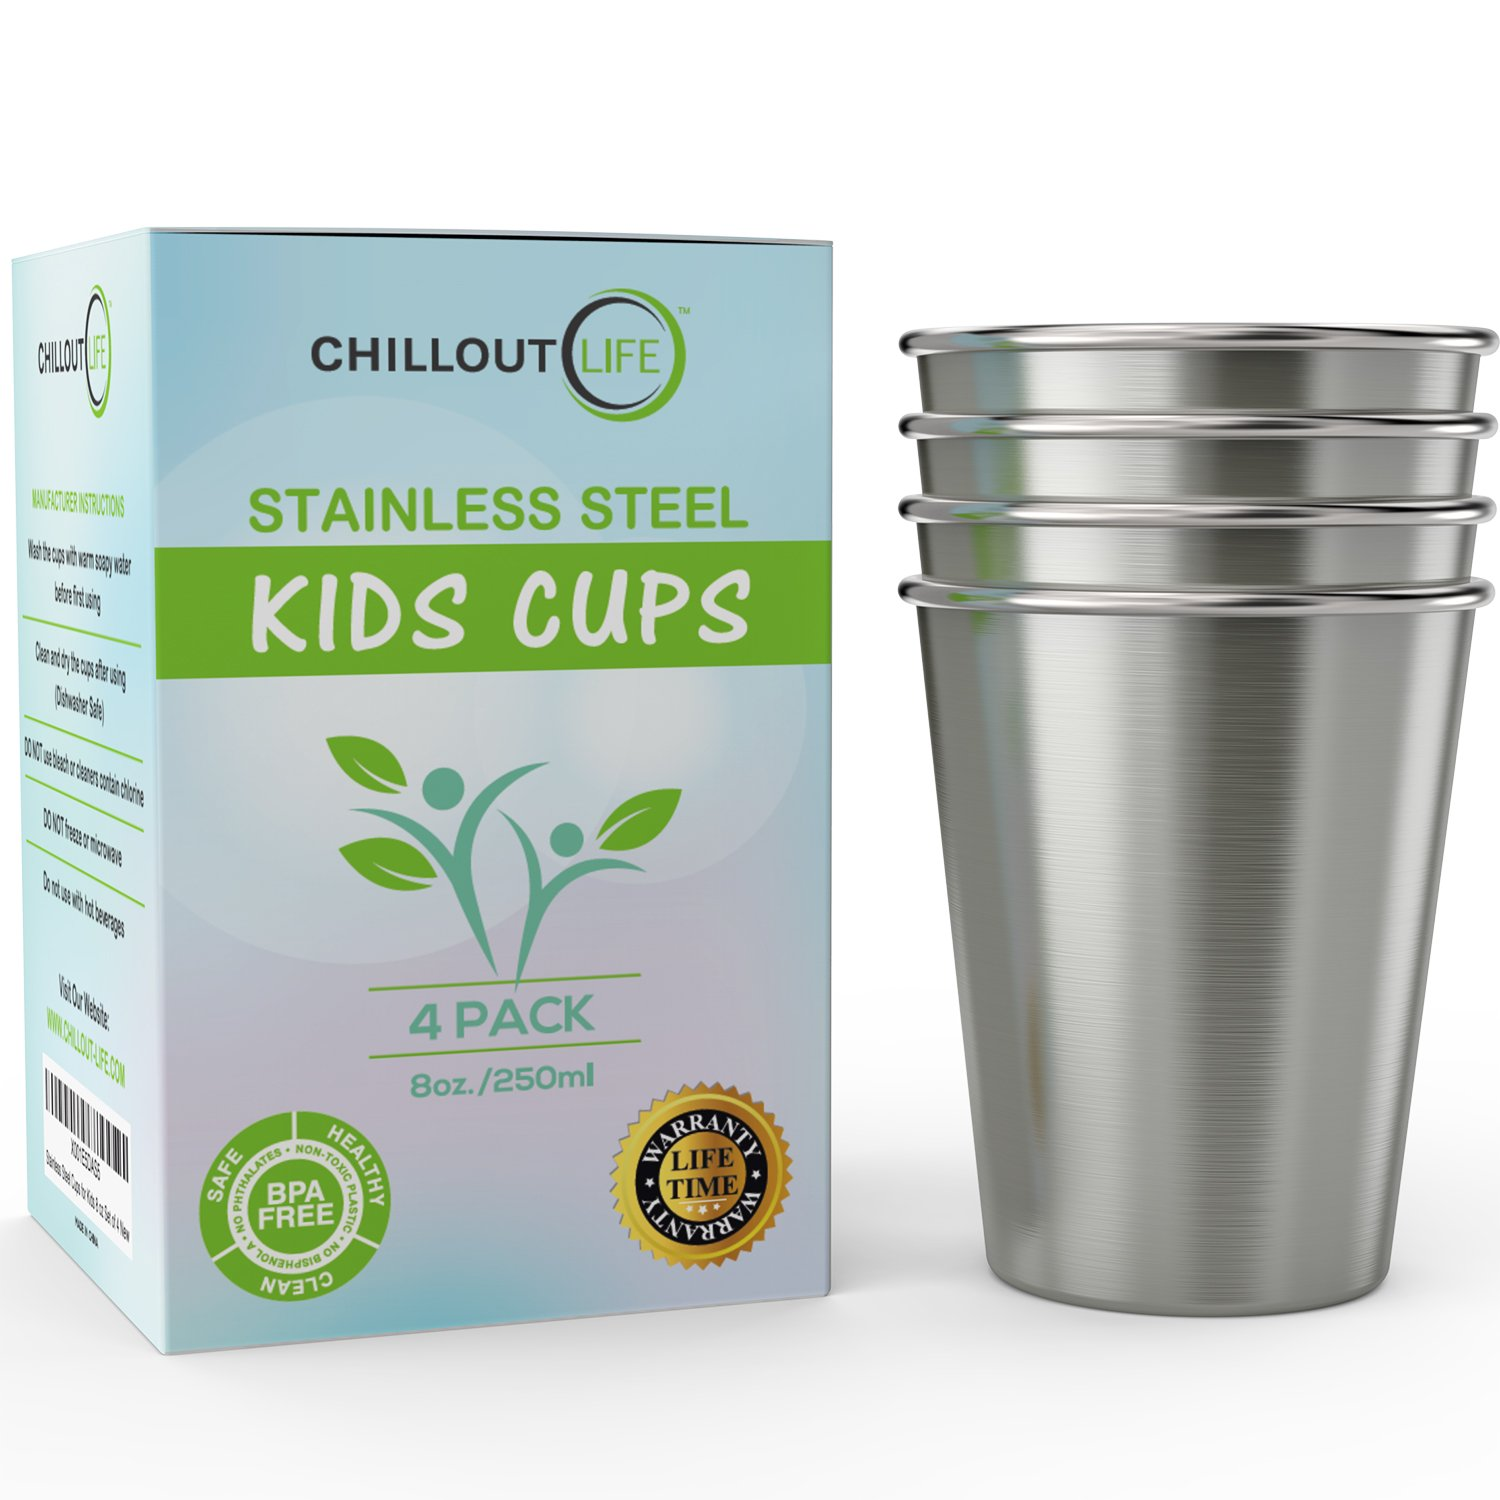 Stainless Steel Cups for Kids and Toddlers 8 oz - Stainless Steel Sippy Cups for Home & Outdoor Activities, BPA Free Healthy Unbreakable Premium Metal Drinking Glasses (4-Pack) CHILLOUT LIFE